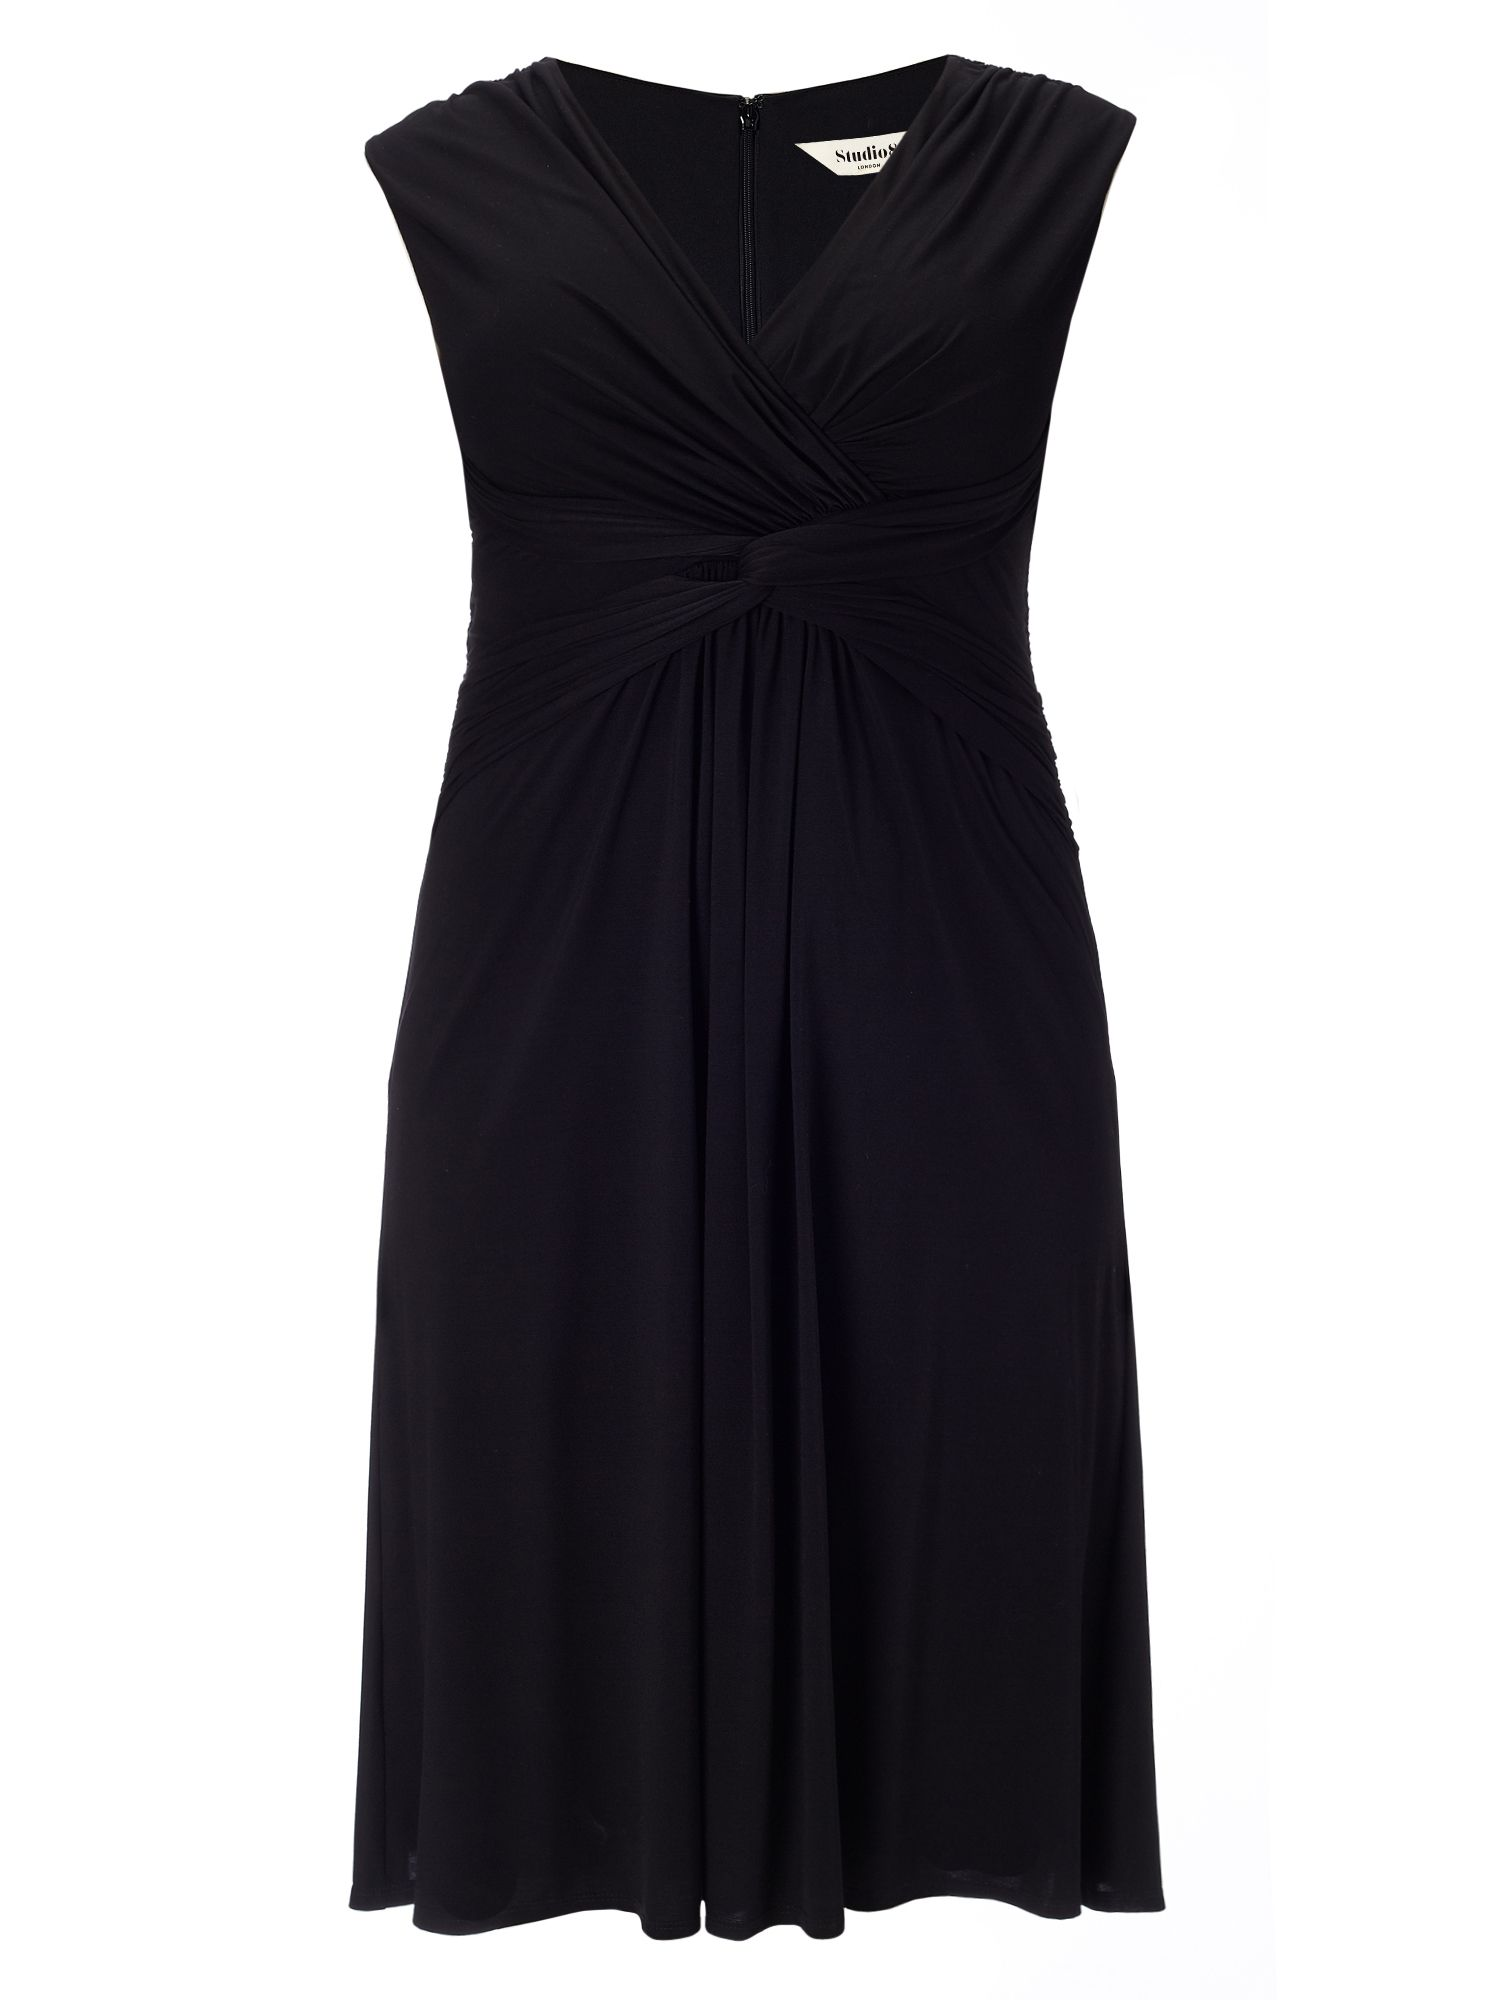 Studio 8 Plus Size Marnie knot dress, Black